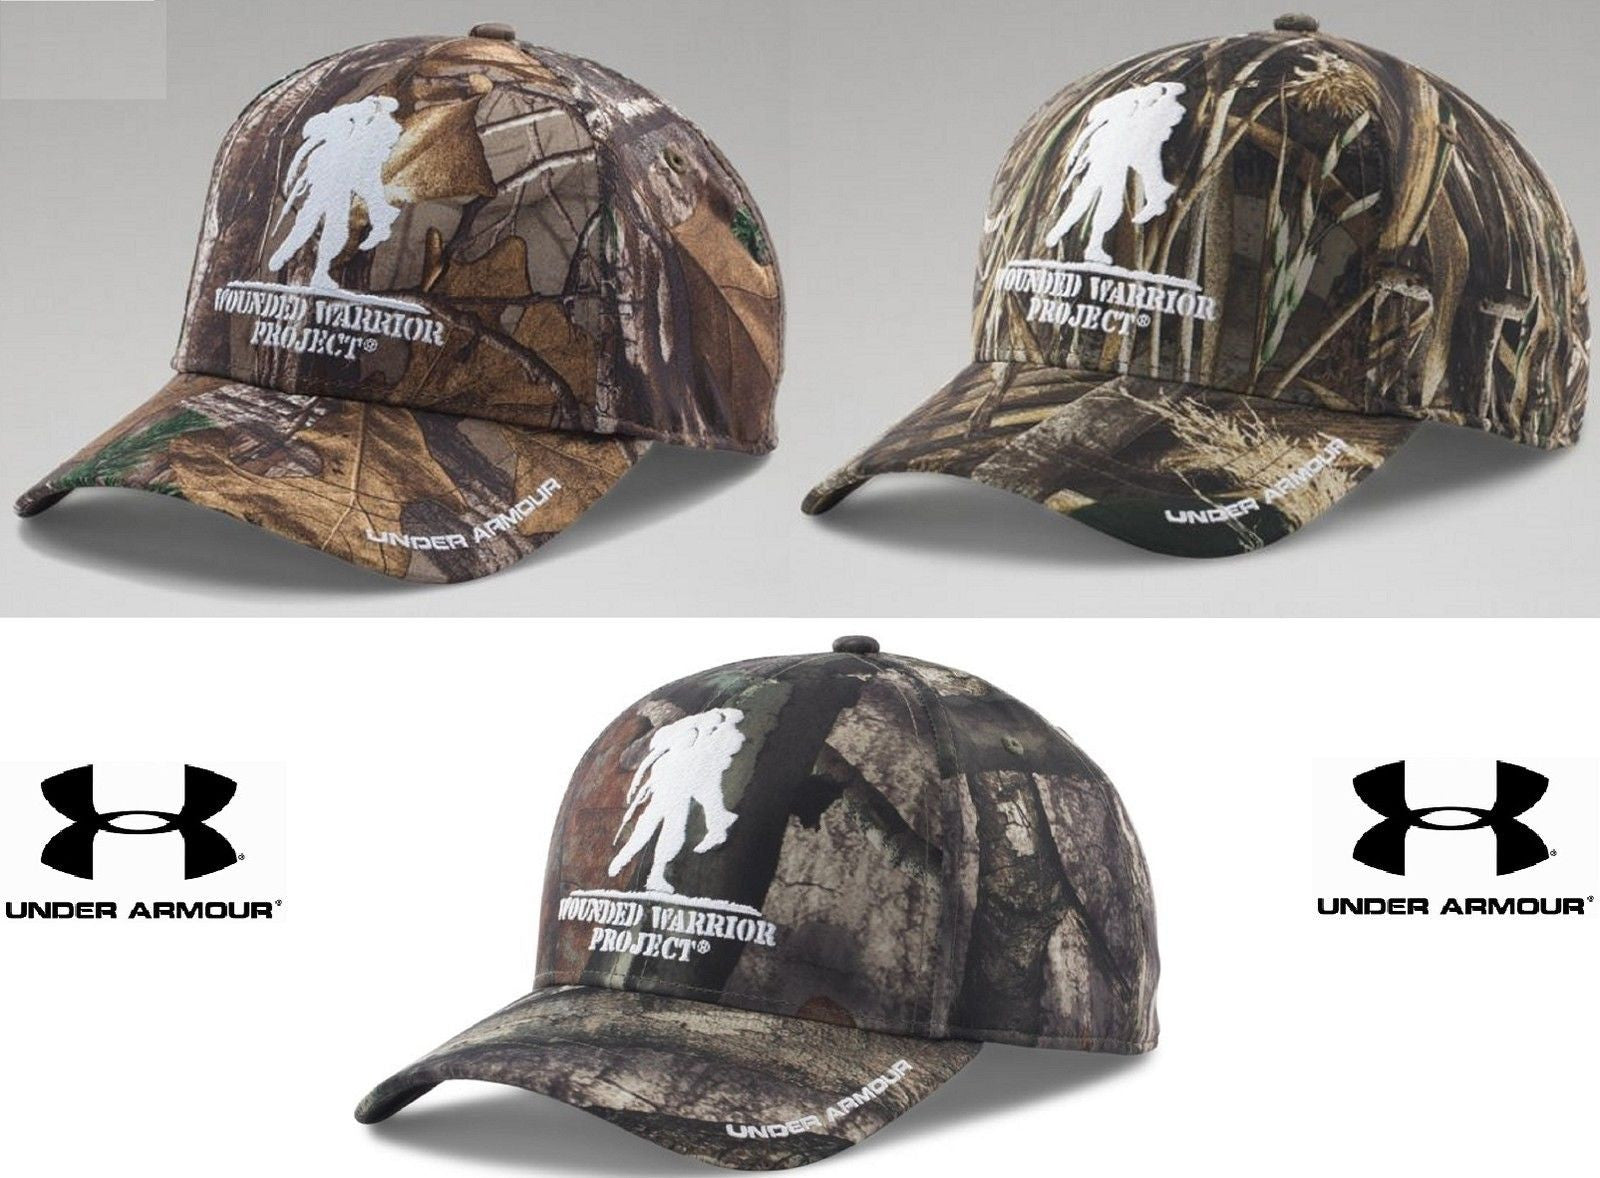 70a0b7bad3a Under Armour Wounded Warrior Project Camo Snap Cap - Mens UA Embroidered  WWP Hat.